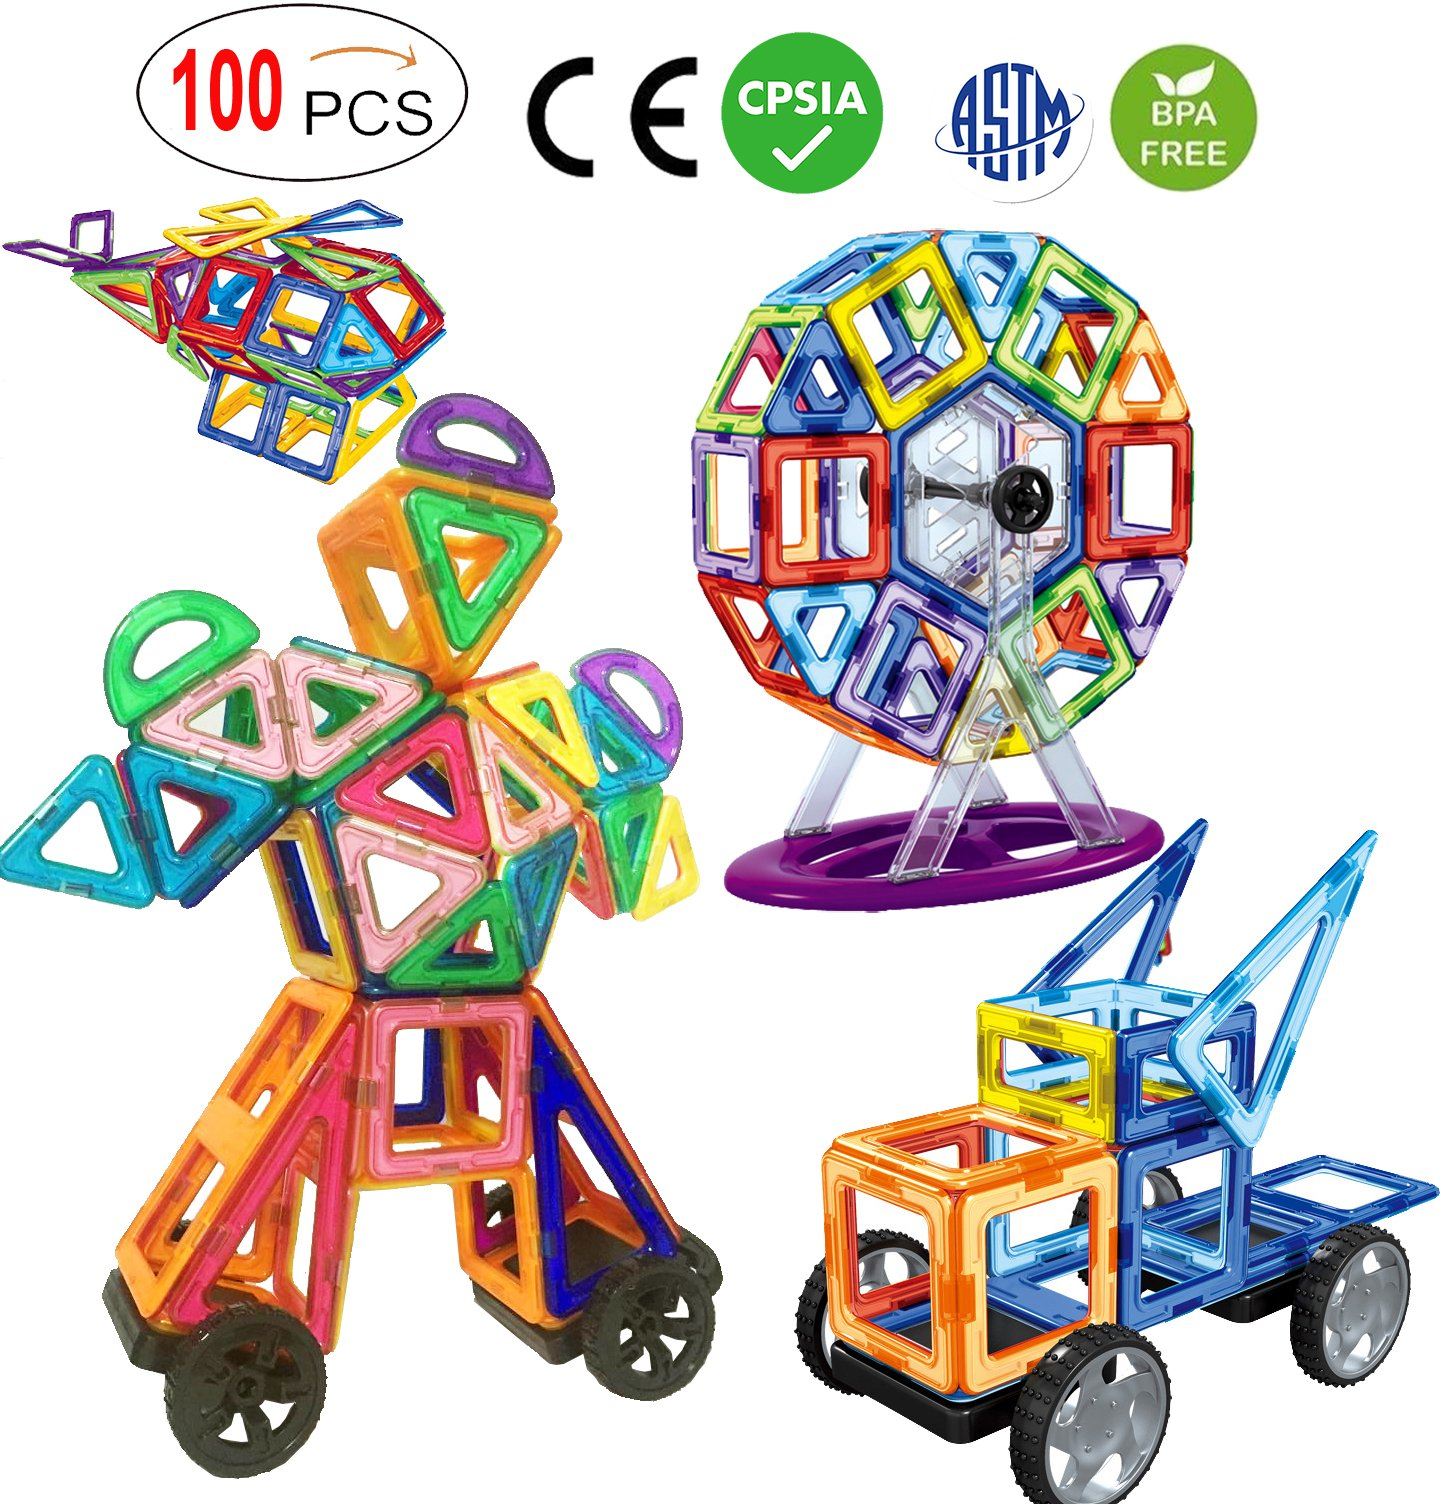 ALL Magnetic Tiles, No Cards,100 Magnetic Blocks Building Toys for Kids,16 different shapes, triangles,squares, archs, sectors, semi circles, Circles, Pentagon, Hexagon,diamonds,trapezoid etc (100 PC)